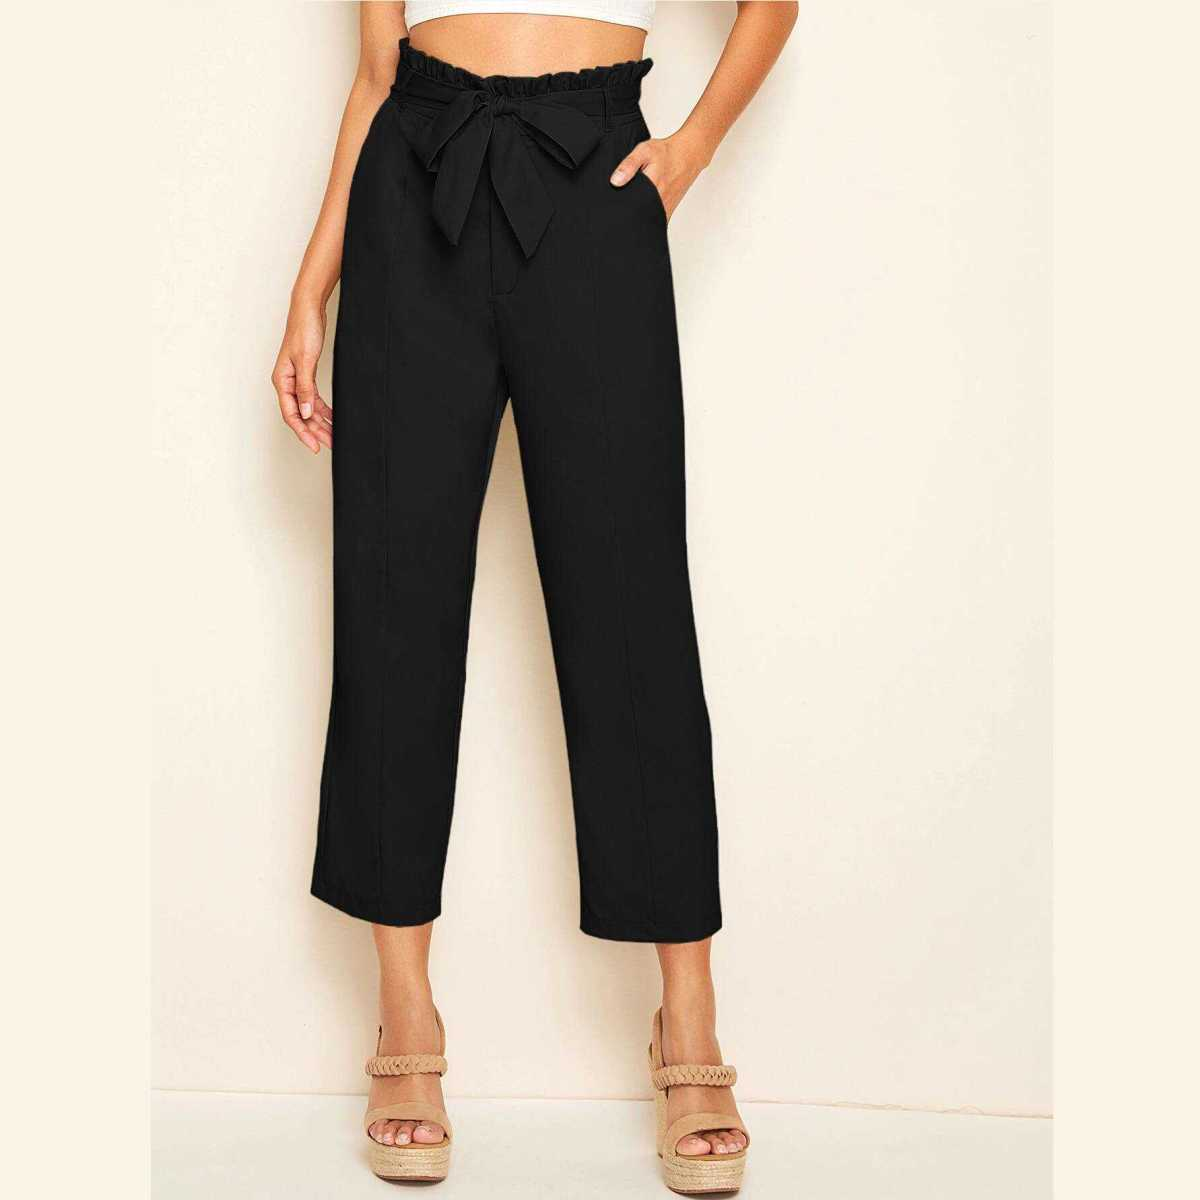 Solid Paperbag Waist Belted Straight Pants in Black by ROMWE on GOOFASH